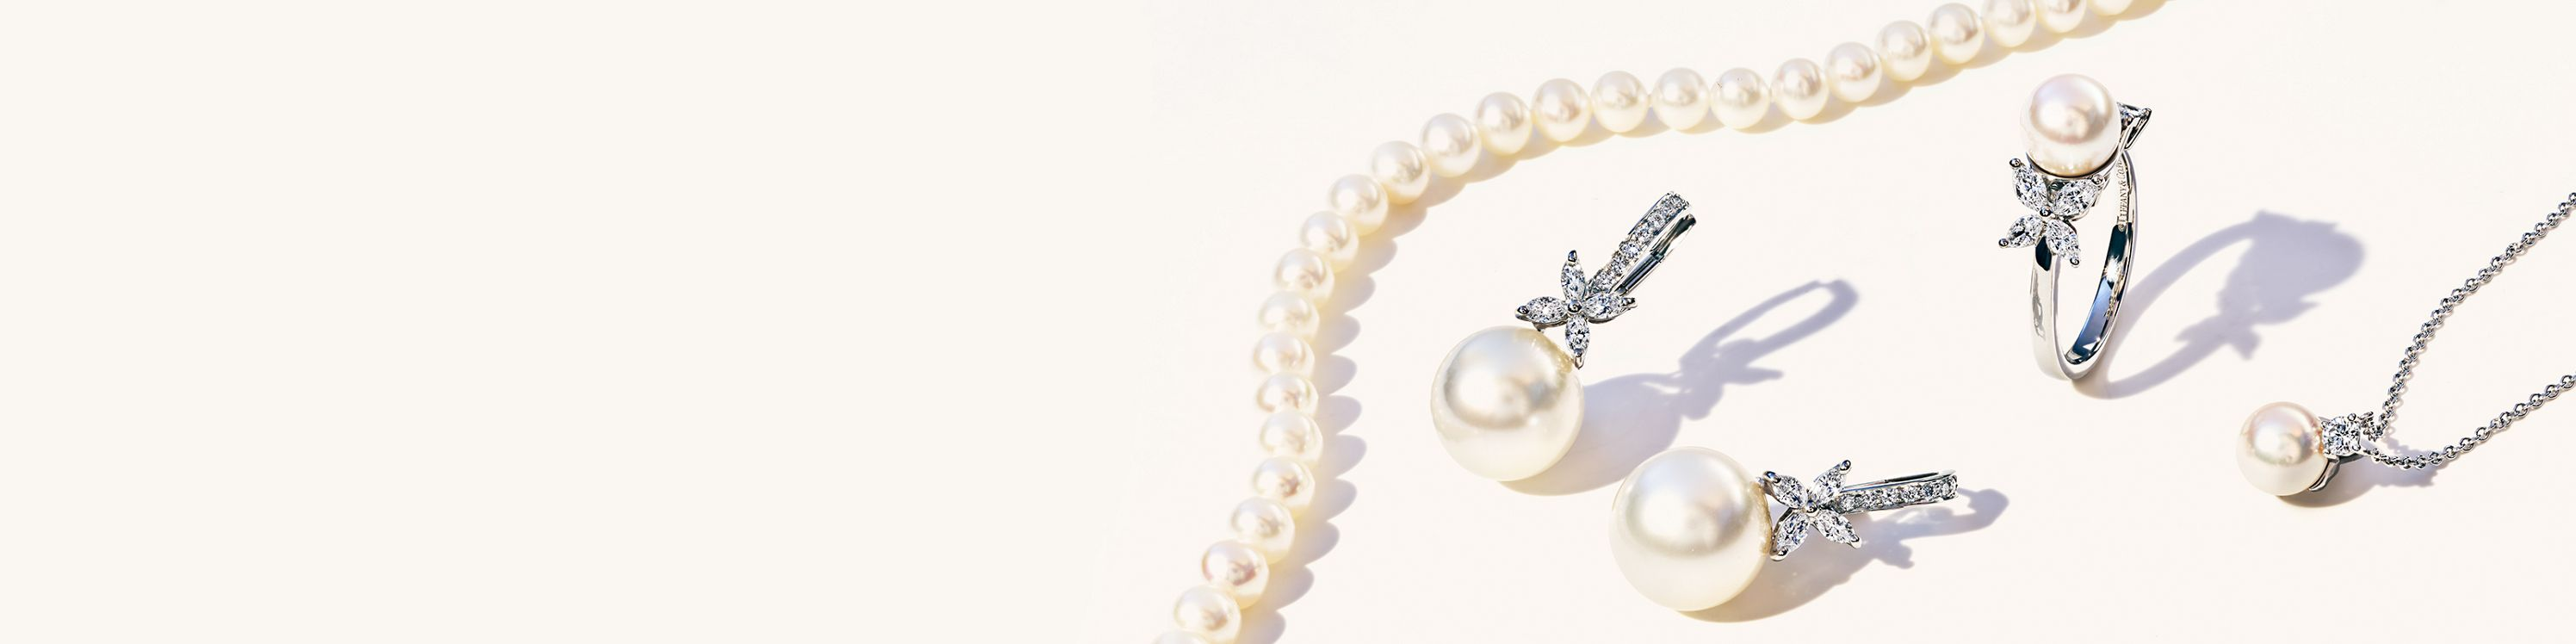 8886bed3d8 Pearl Jewelry | Tiffany & Co.